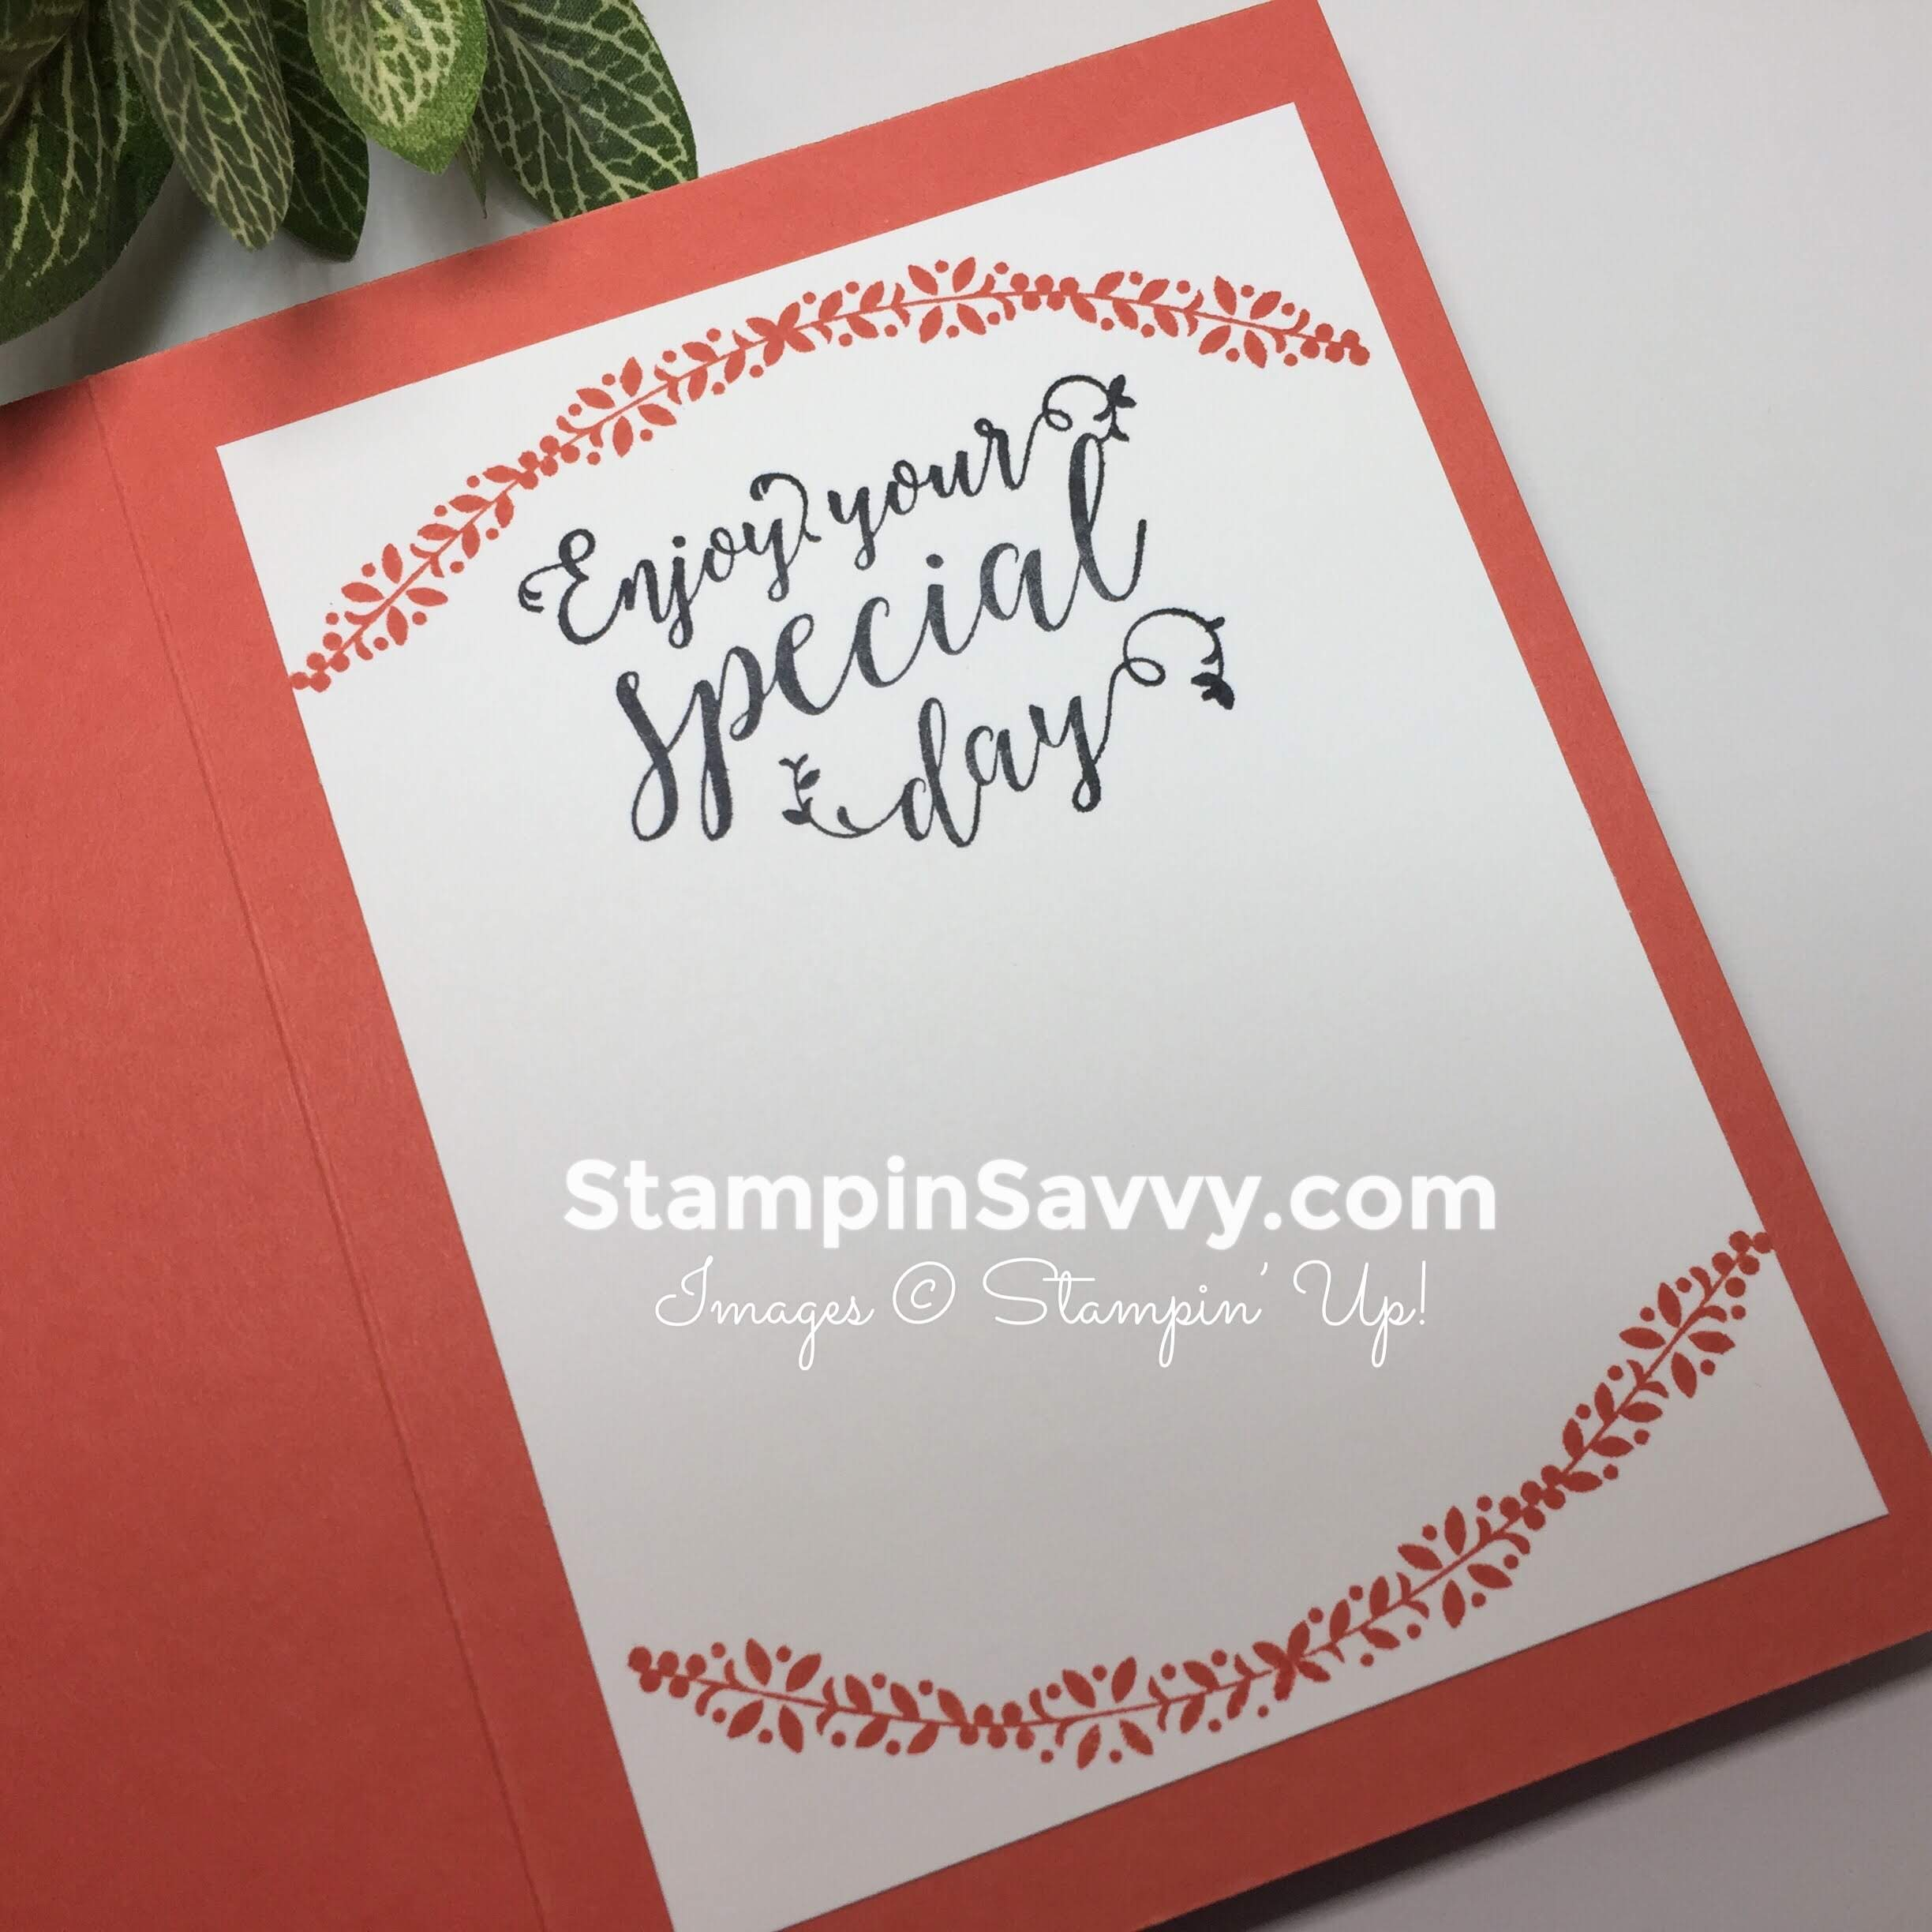 su graceful glass, card ideas, inside, stampin up, stampinup, stampin savvy, stampinsavvy, tammy beard